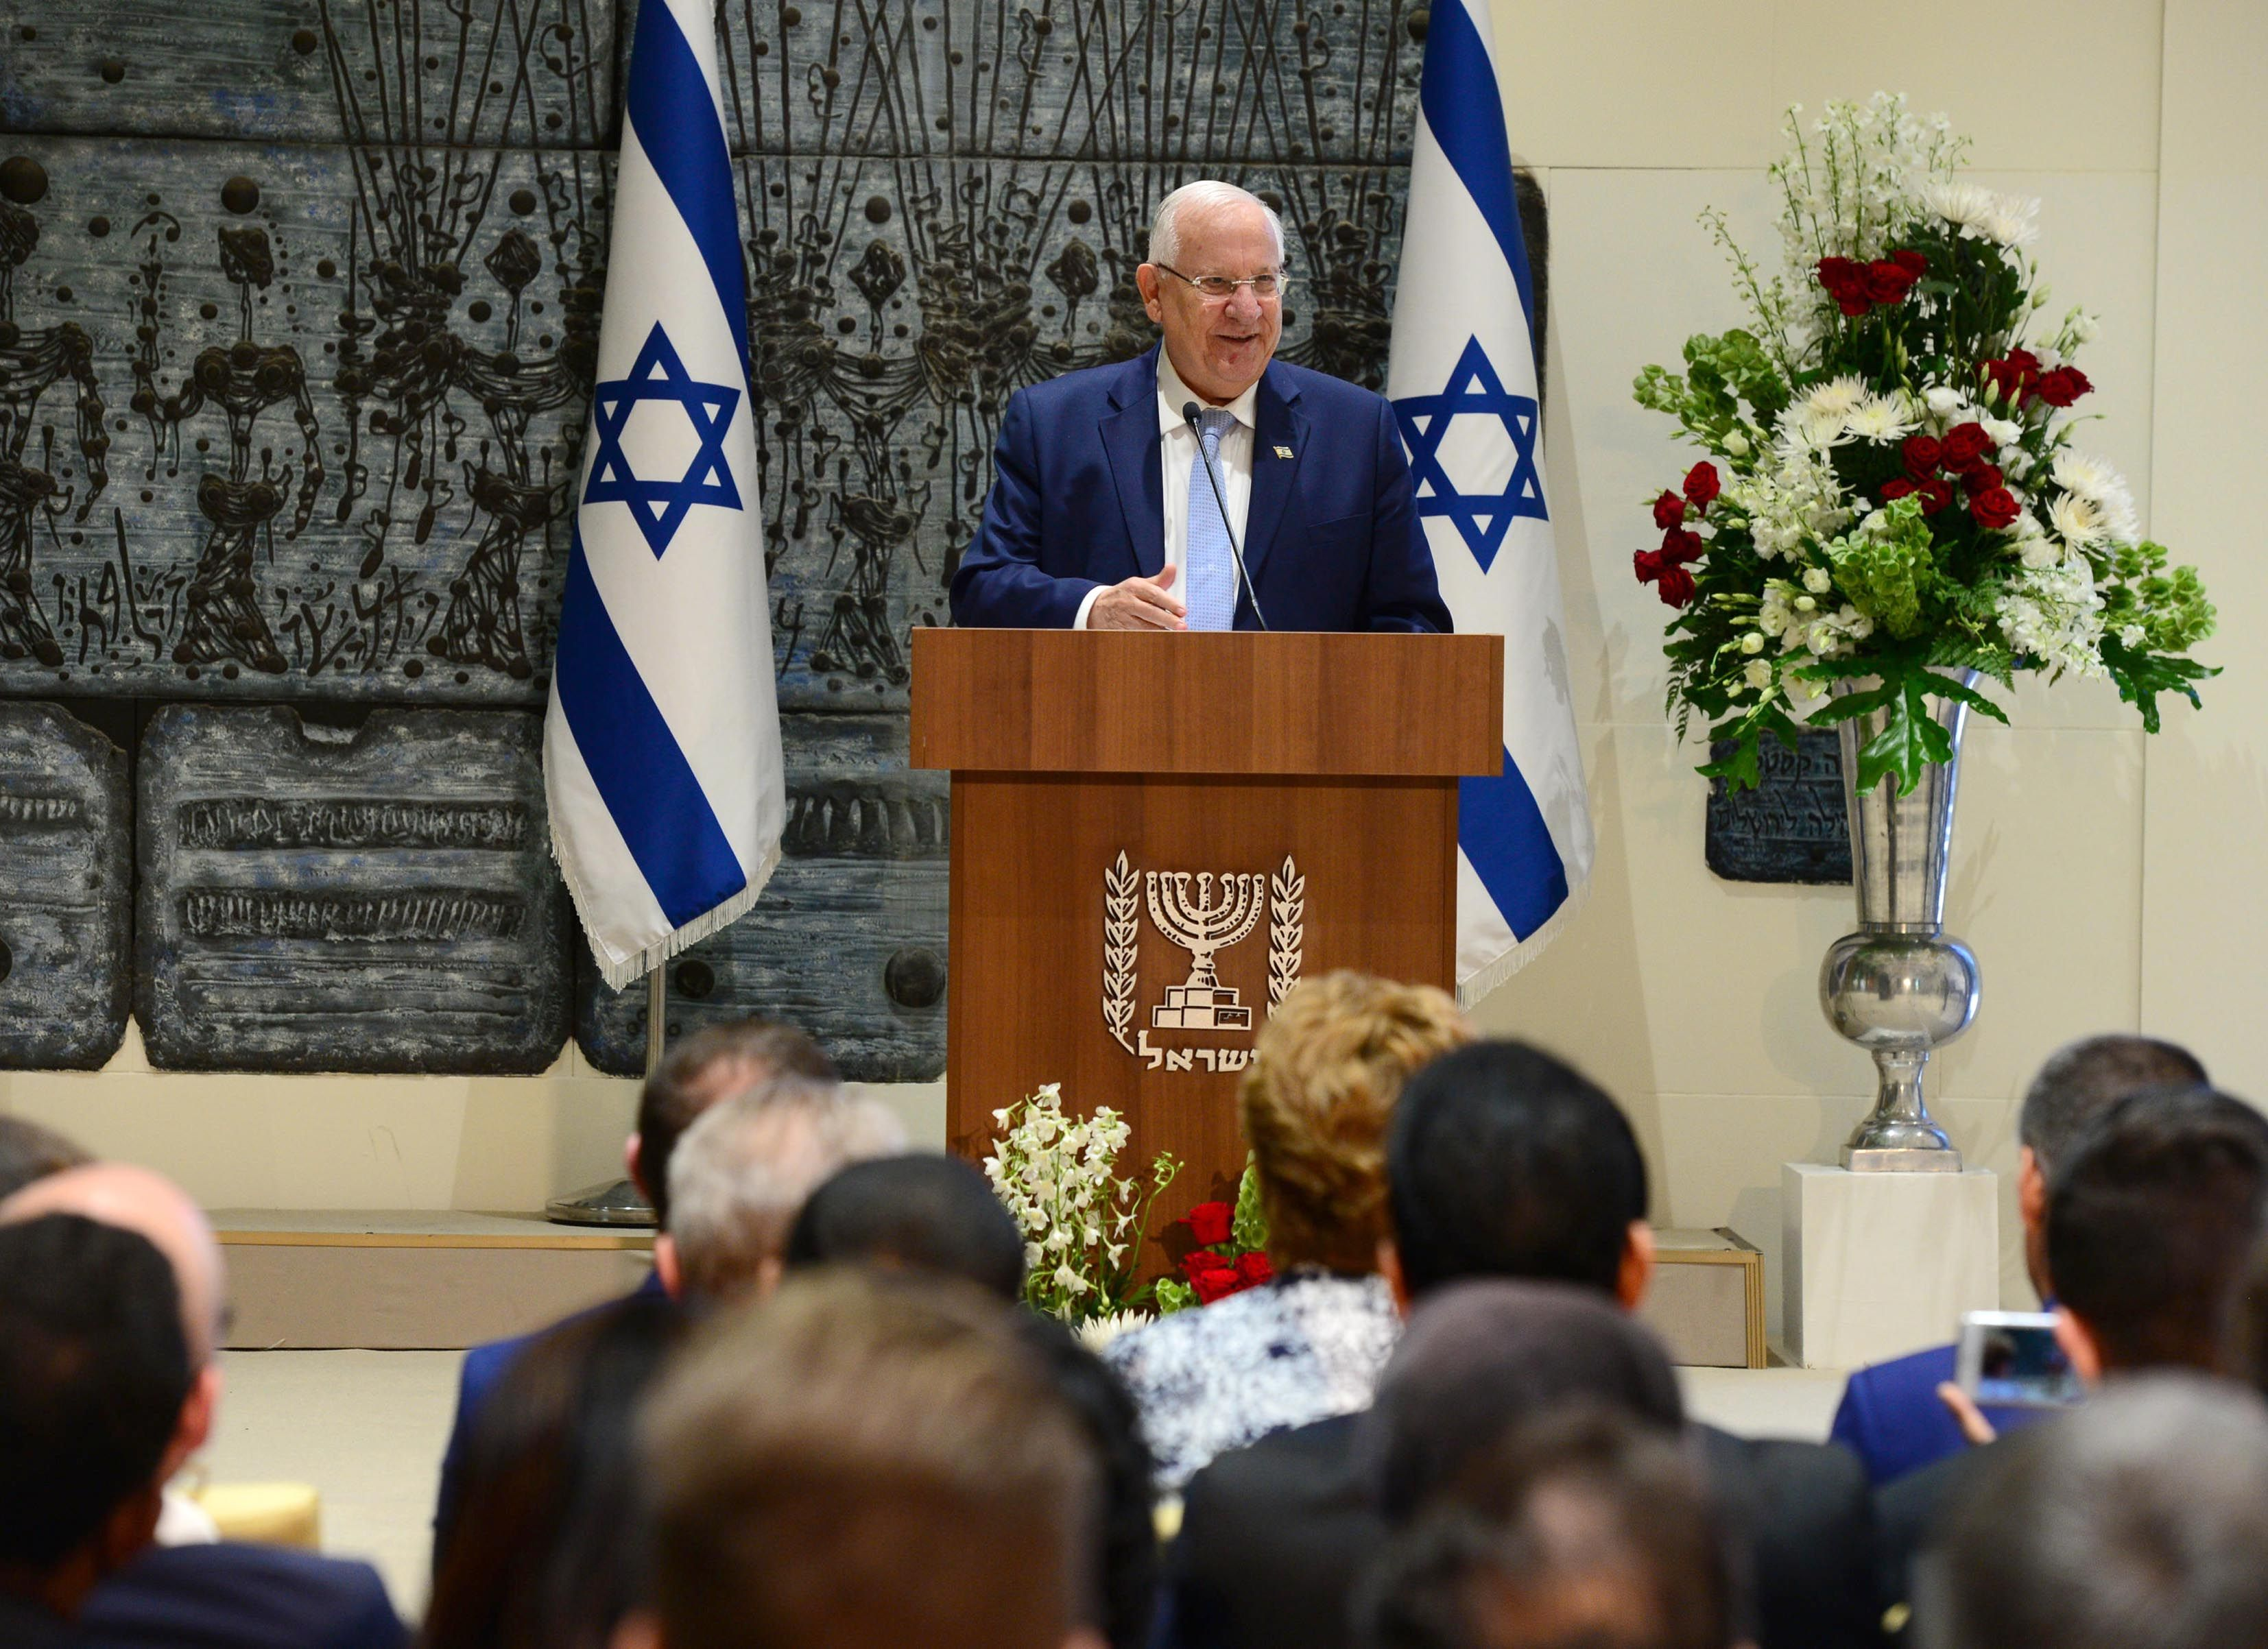 Israeli president to US Jews: Nazi flags in American streets 'almost beyond beli